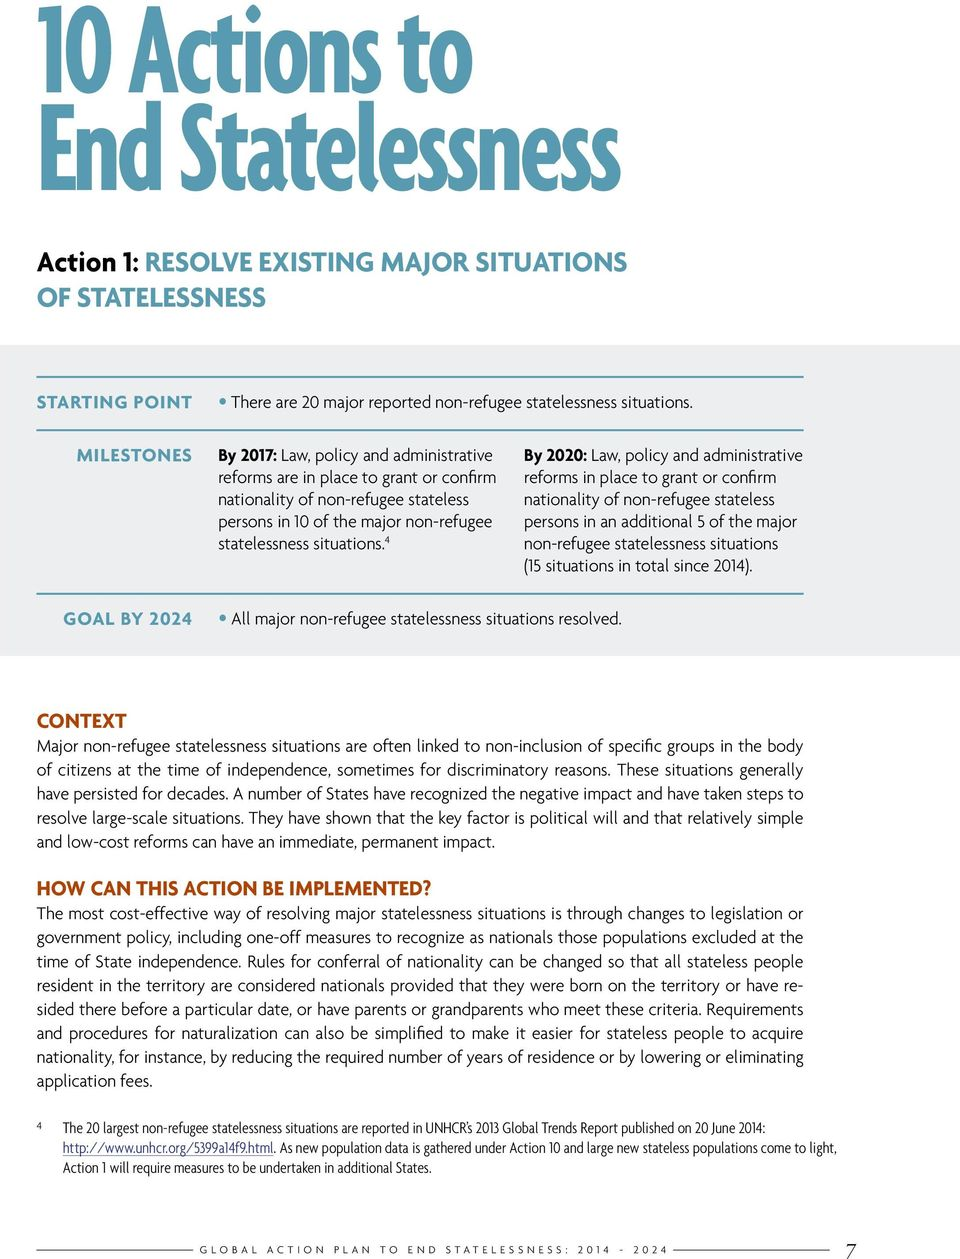 4 By 2020: Law, policy and administrative reforms in place to grant or confirm nationality of non-refugee stateless persons in an additional 5 of the major non-refugee statelessness situations (15